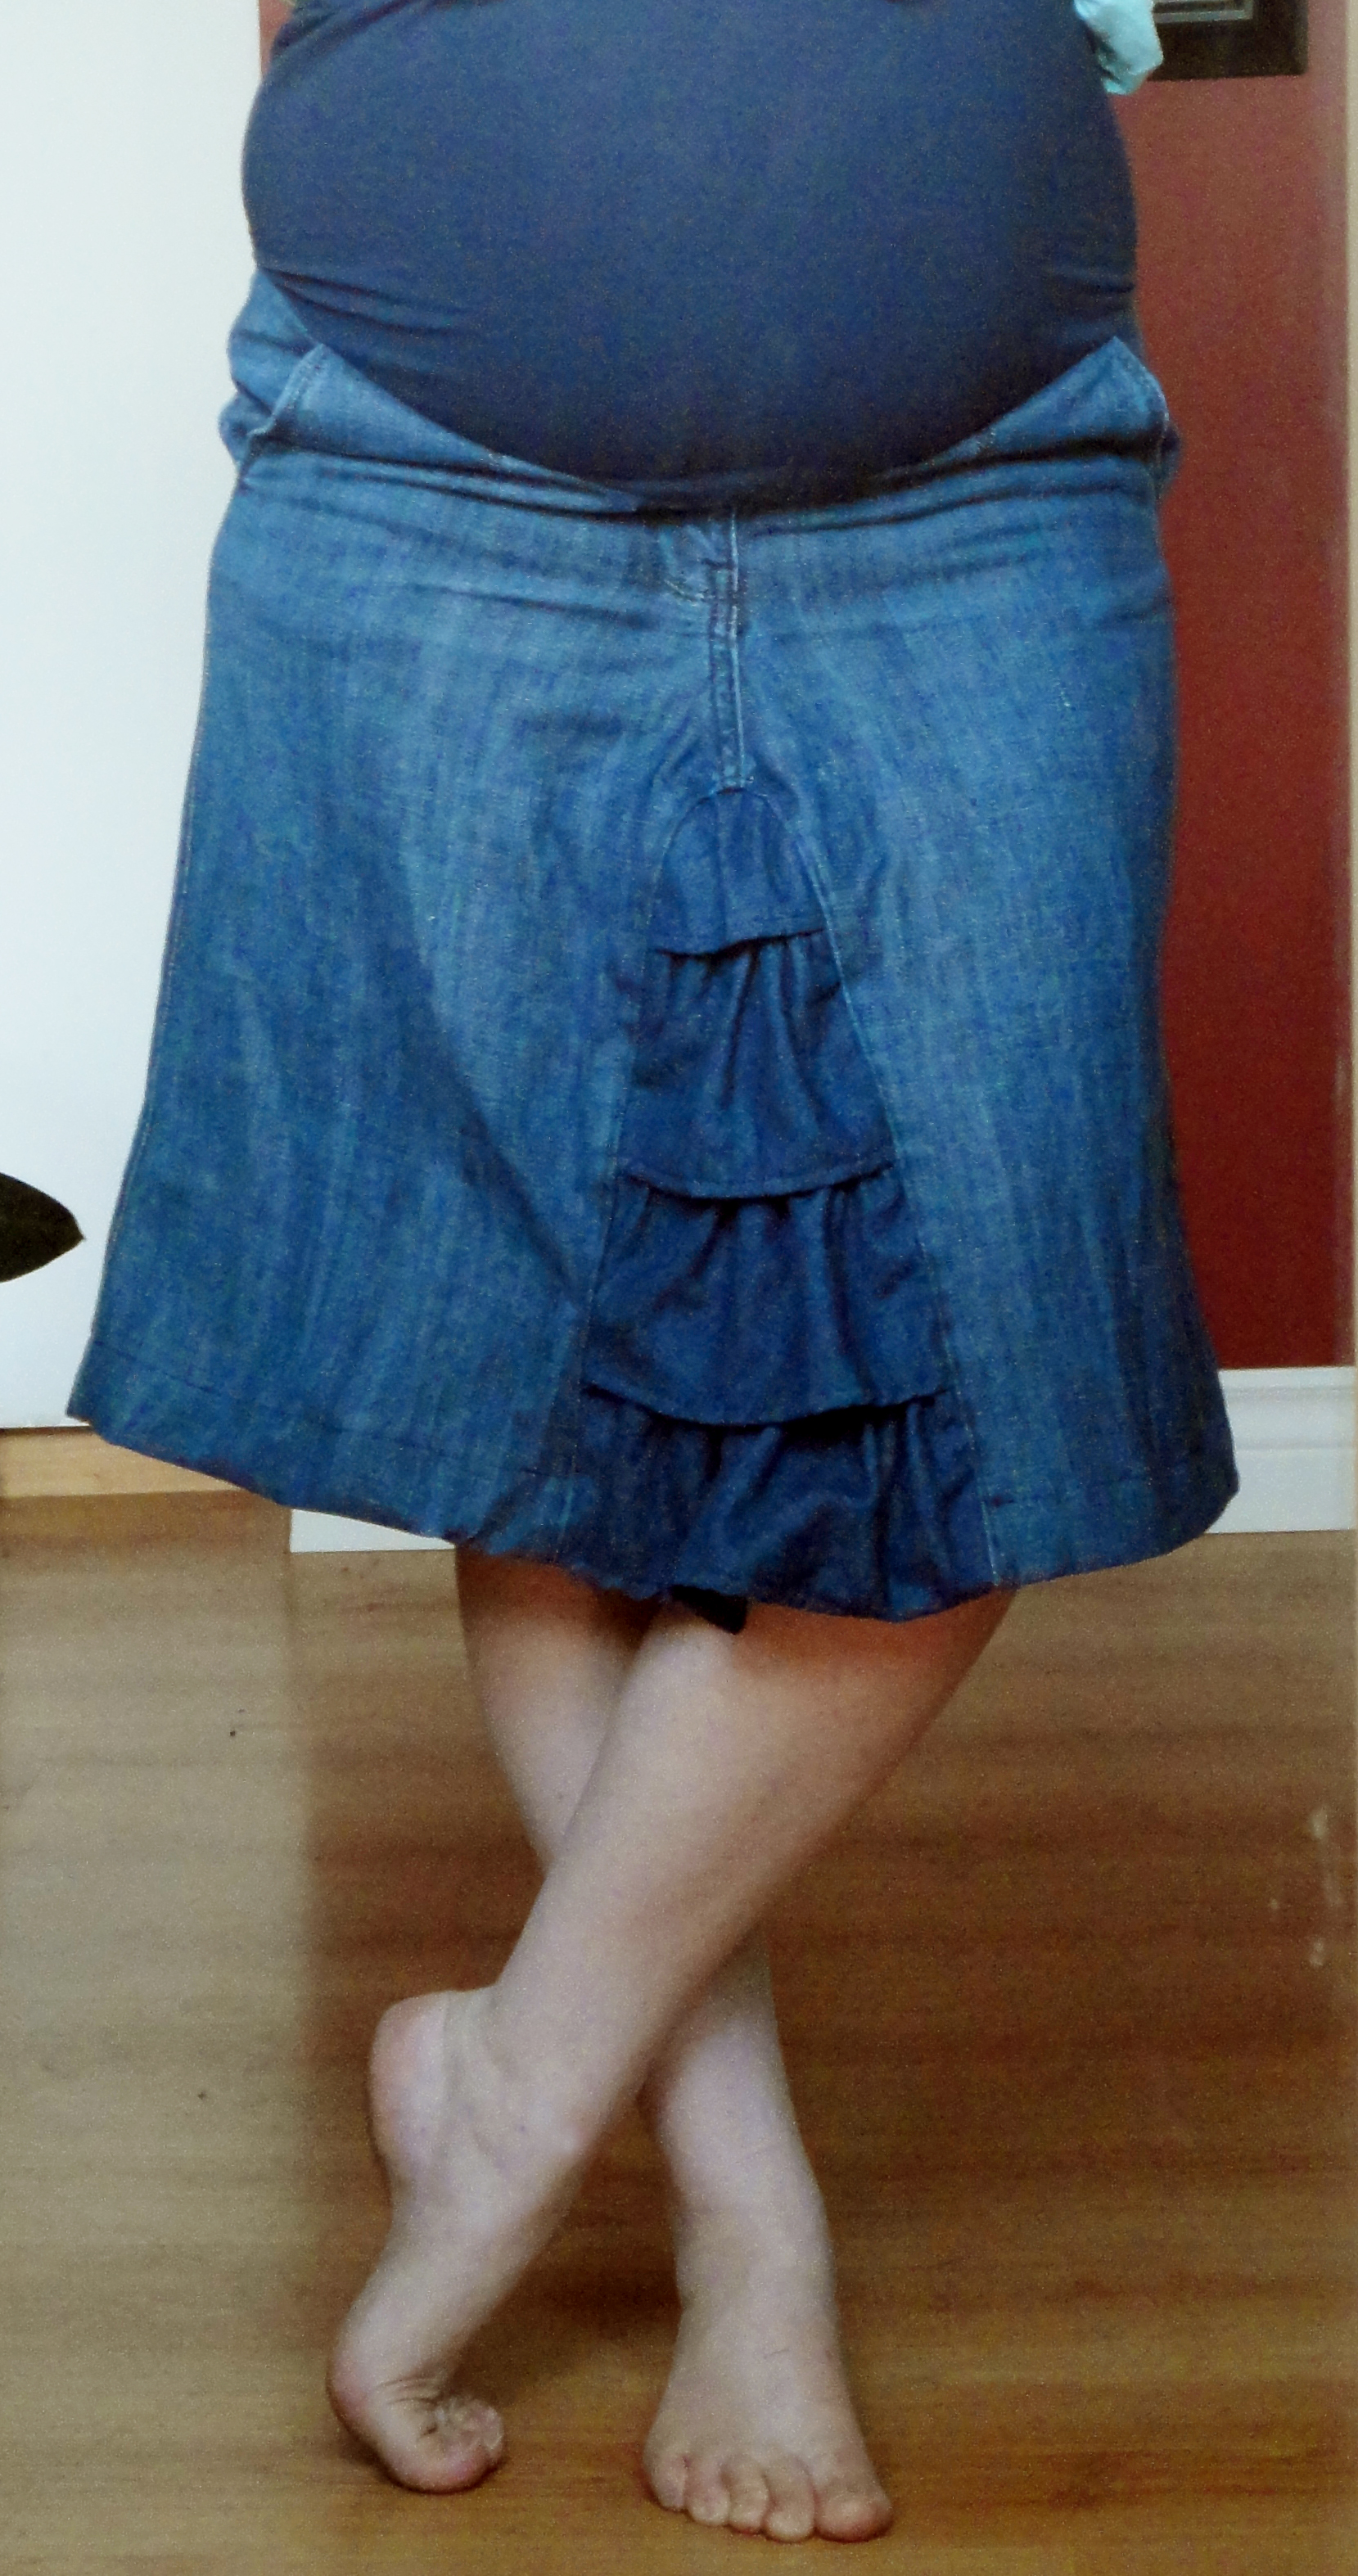 Sew A Ruffled Maternity Skirt From Jeans The Diy Mommy